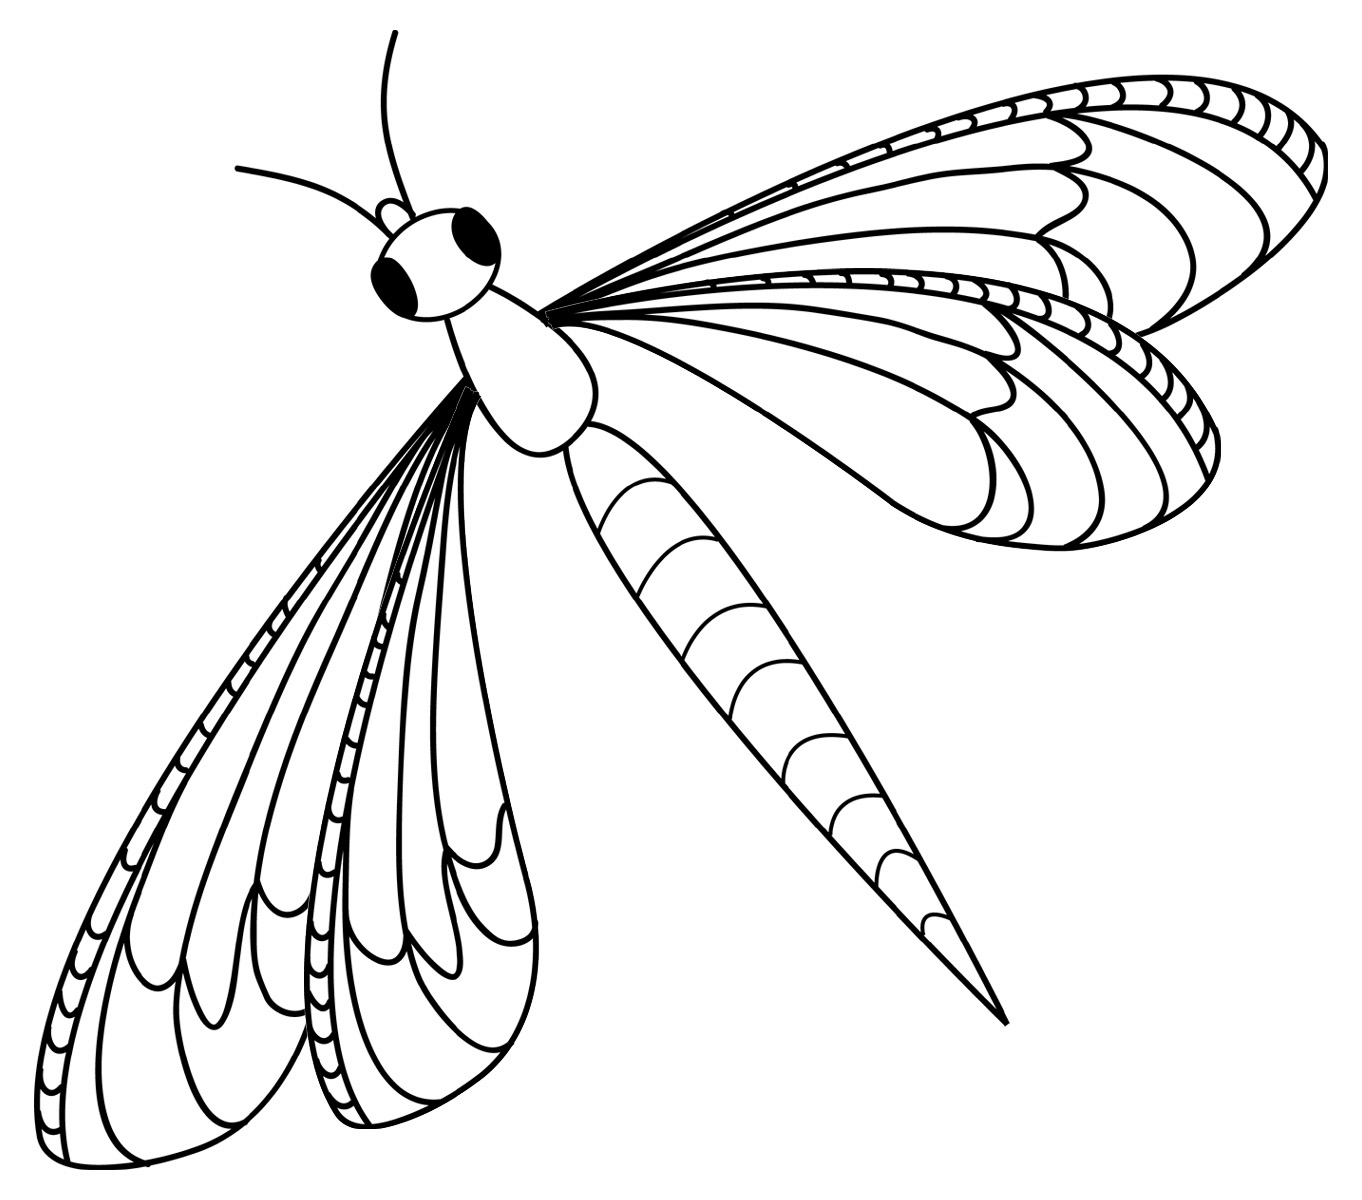 Of insects free coloring pages on art coloring pages - Free Printable Dragonfly Coloring Pages For Kids